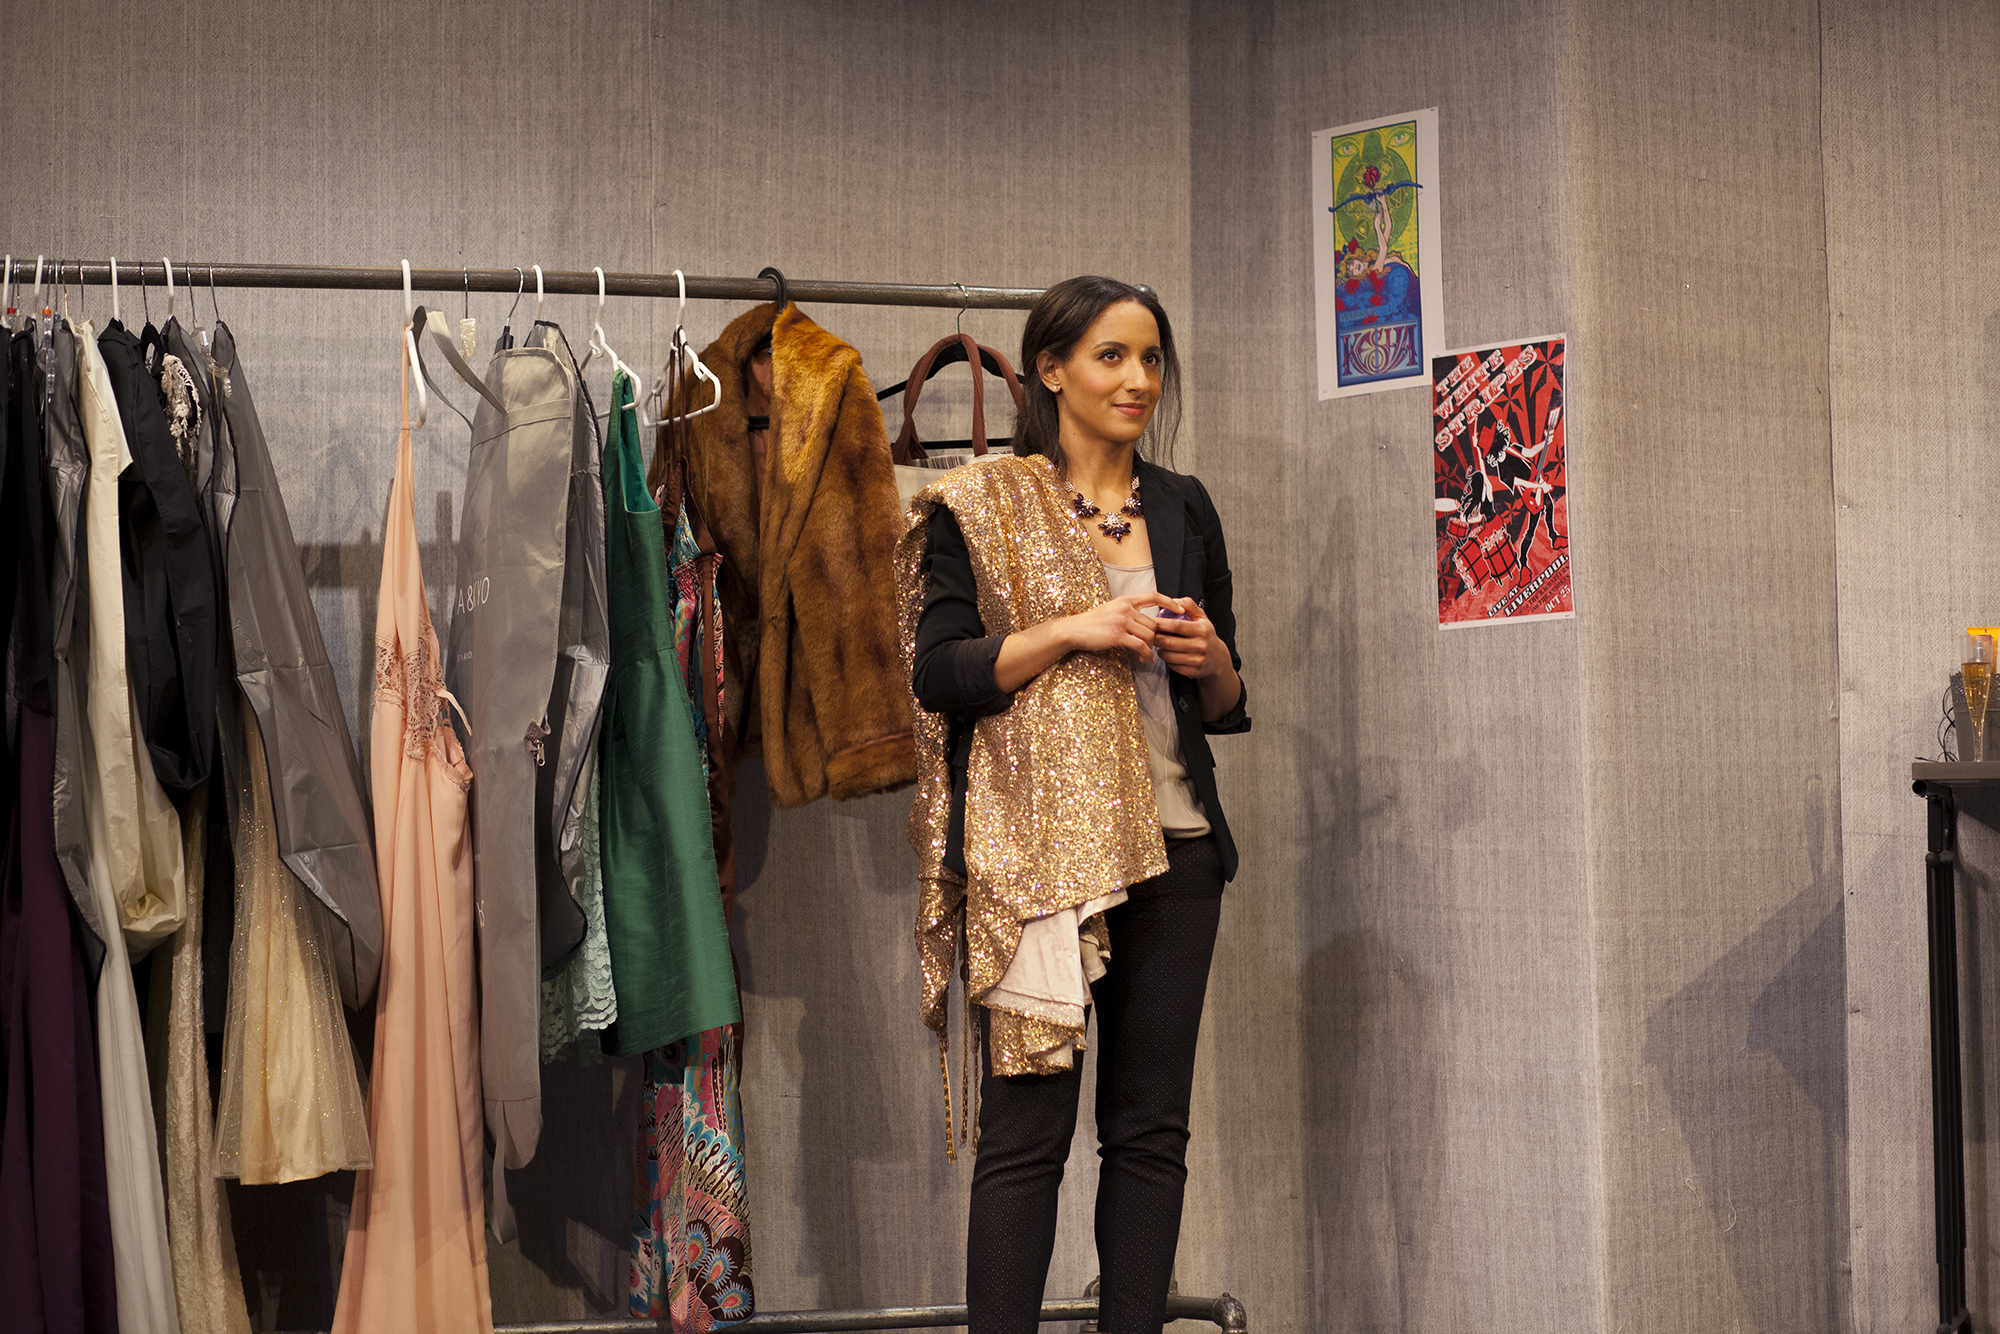 Production image of Anna Martin (Allison Strickland) in  POPTART! when produced by  Girl Just Died at TADA! Theatre in Winter 2015.Photograph by Trish Phelps.